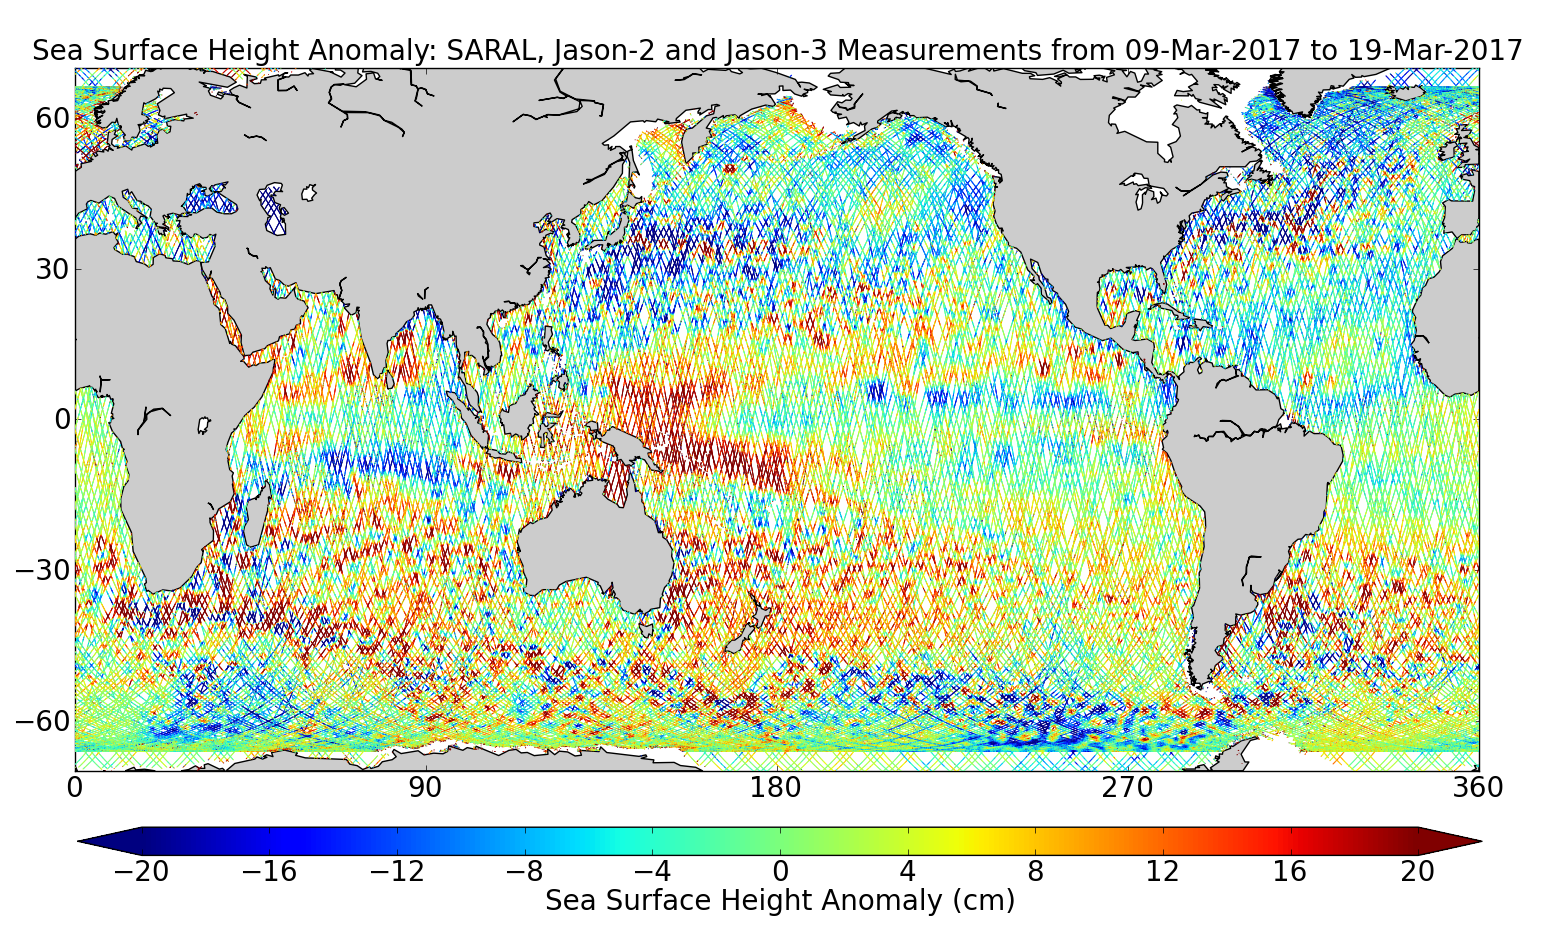 Sea Surface Height Anomaly: SARAL, Jason-2 and Jason-3 Measurements from 09-Mar-2017 to 19-Mar-2017